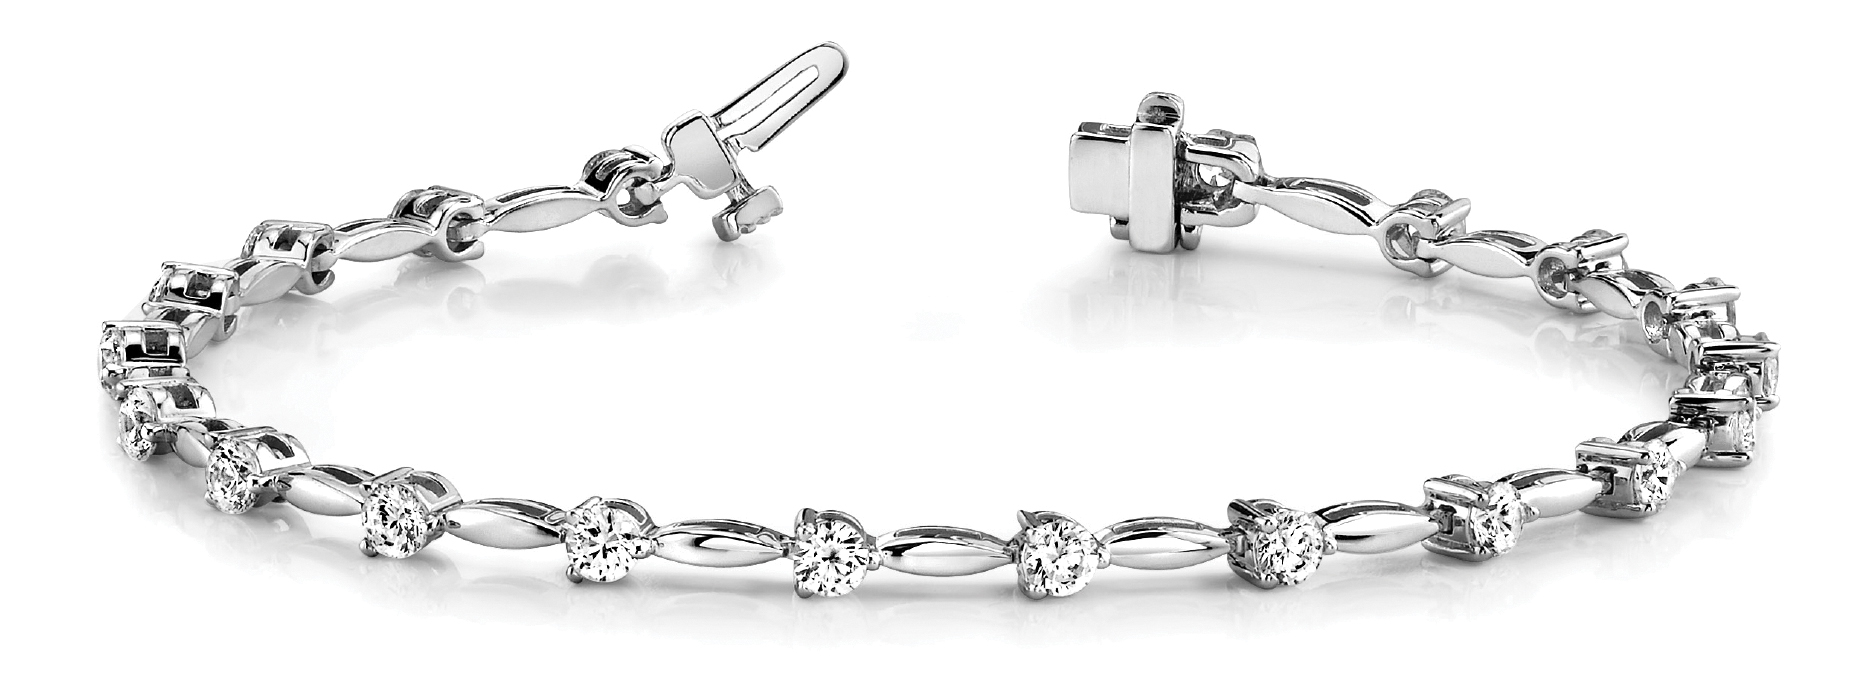 4.05 Carat Round Diamond Bar Link Platinum Bracelet